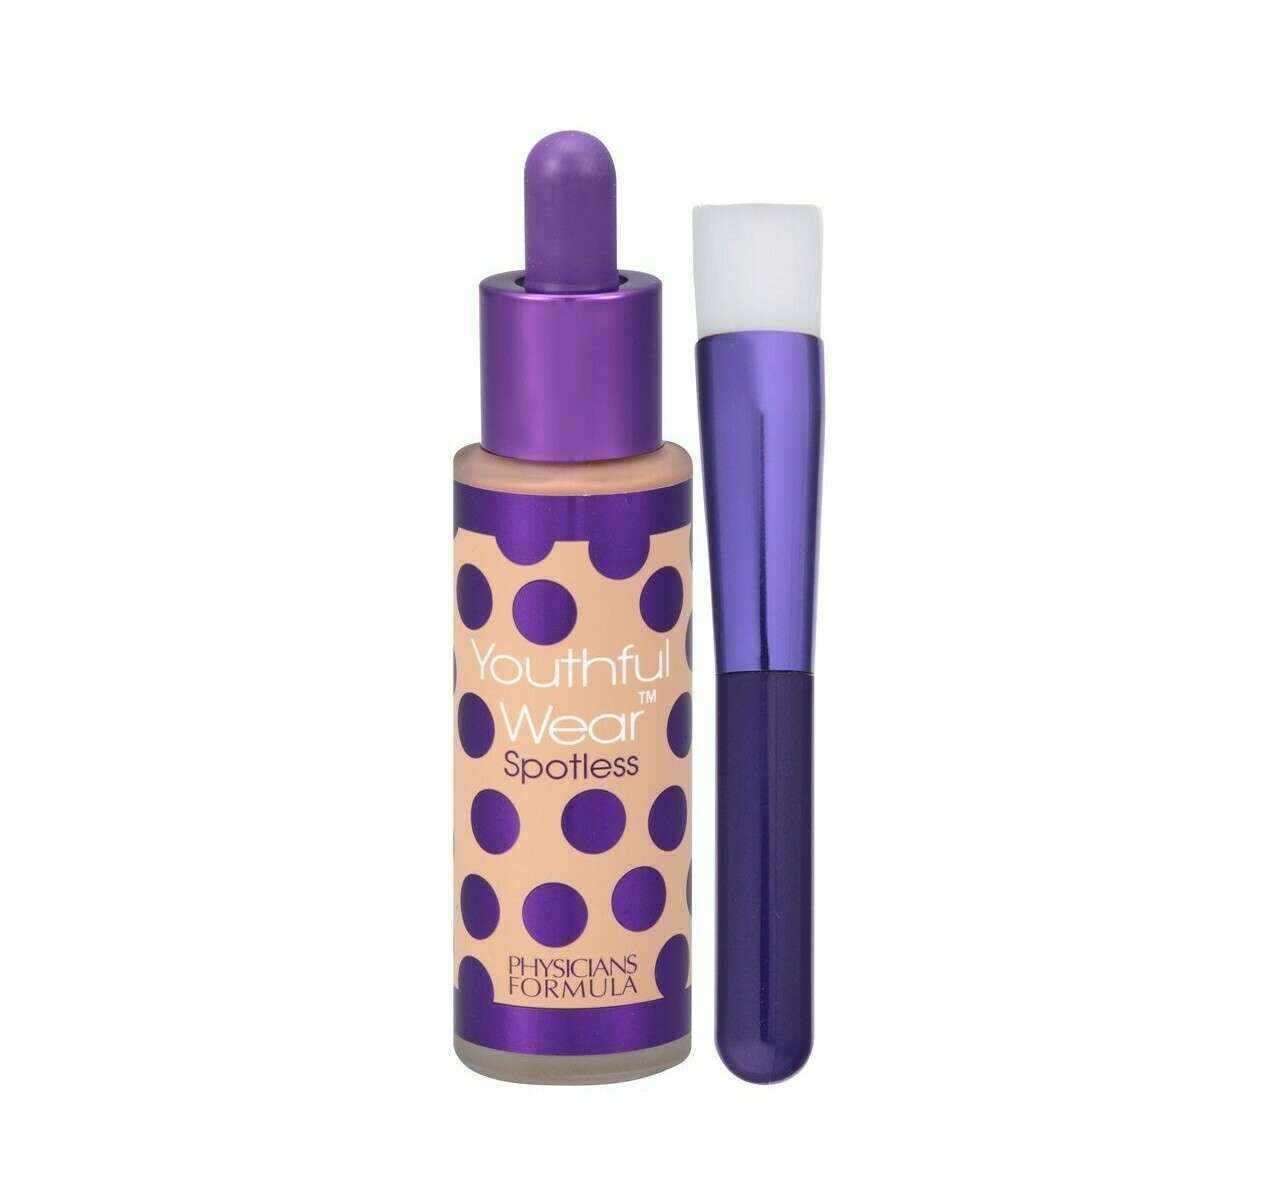 Physicians Formula 170112 Youthful Wear Cosmeceutical Youth-Boosting Spotless Foundation SPF 15